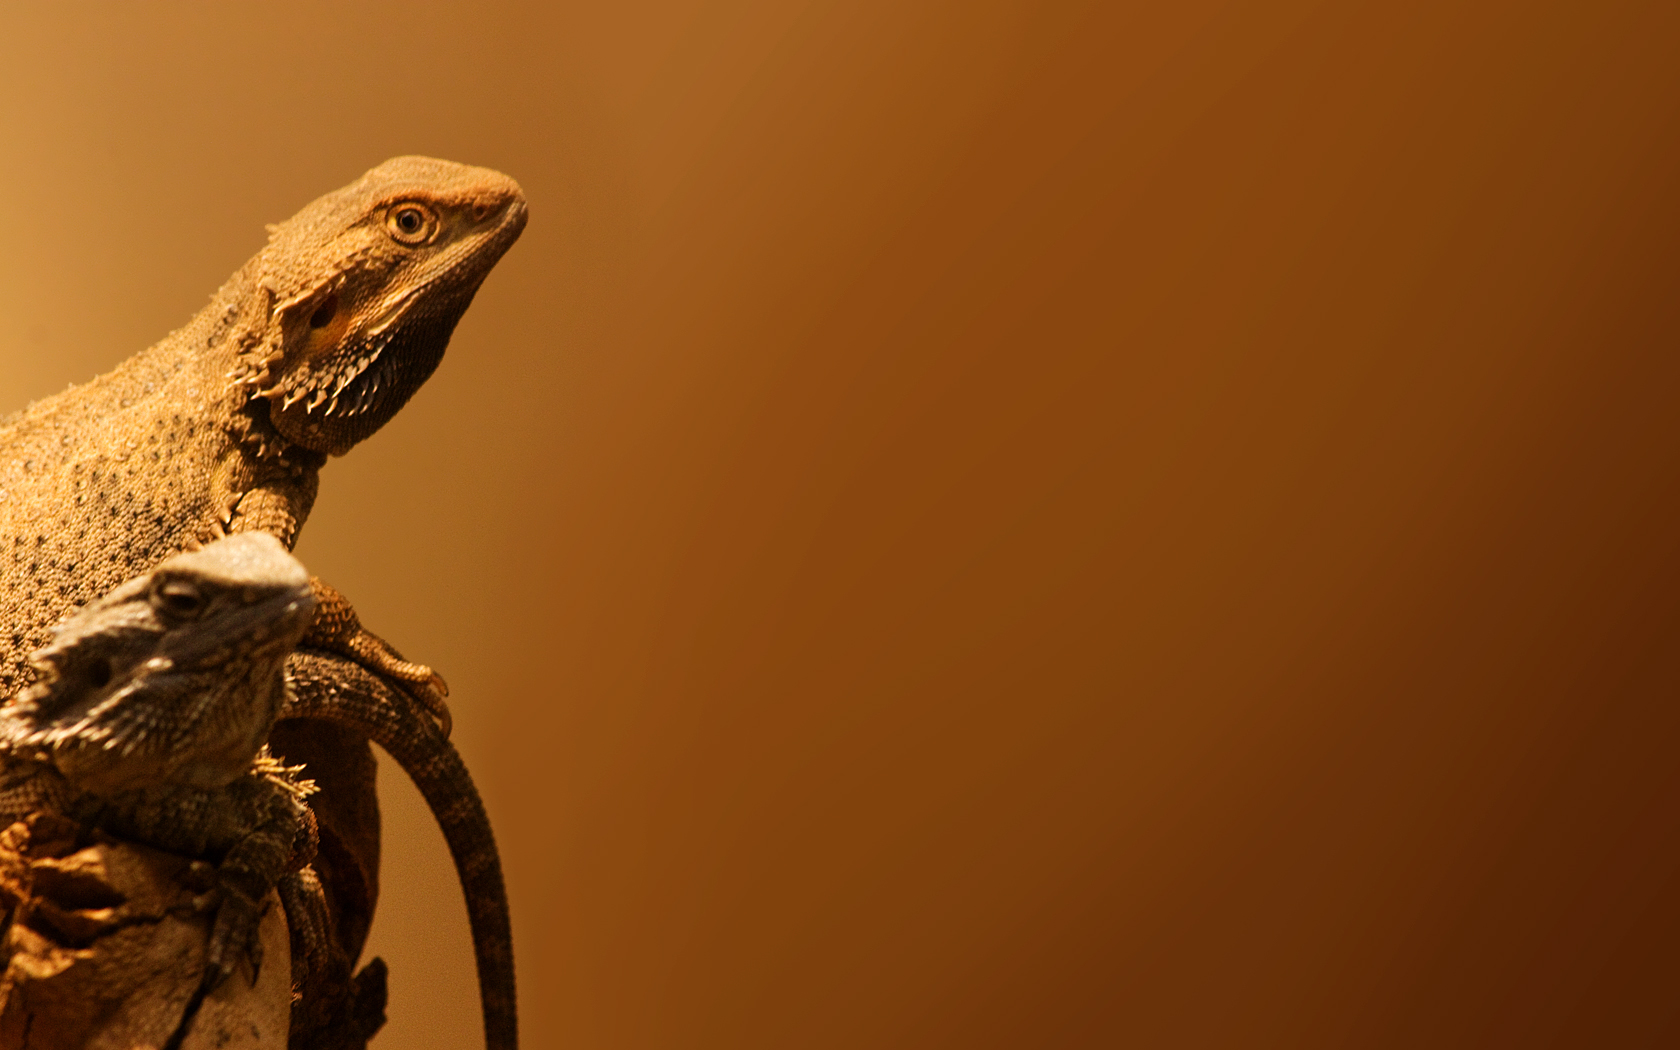 Bearded dragons by ollite20 on deviantart bearded dragons by ollite20 bearded dragons by ollite20 voltagebd Choice Image